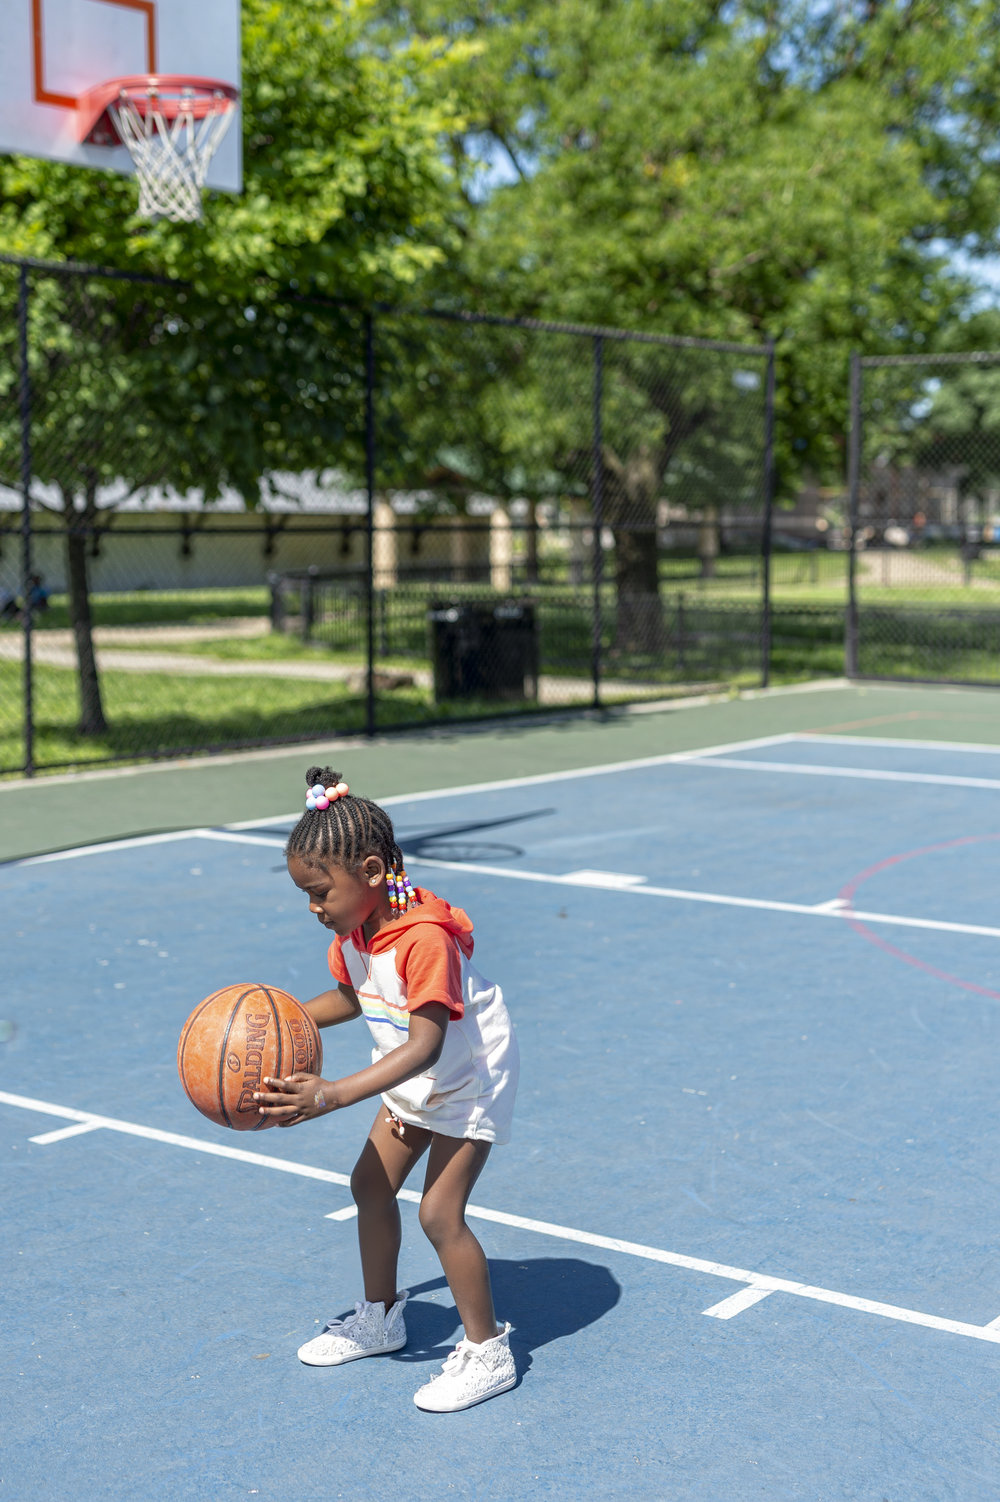 LITTLE-GIRL-PLAYING-BASKETBALL-ARIA-BOLDEN.jpg